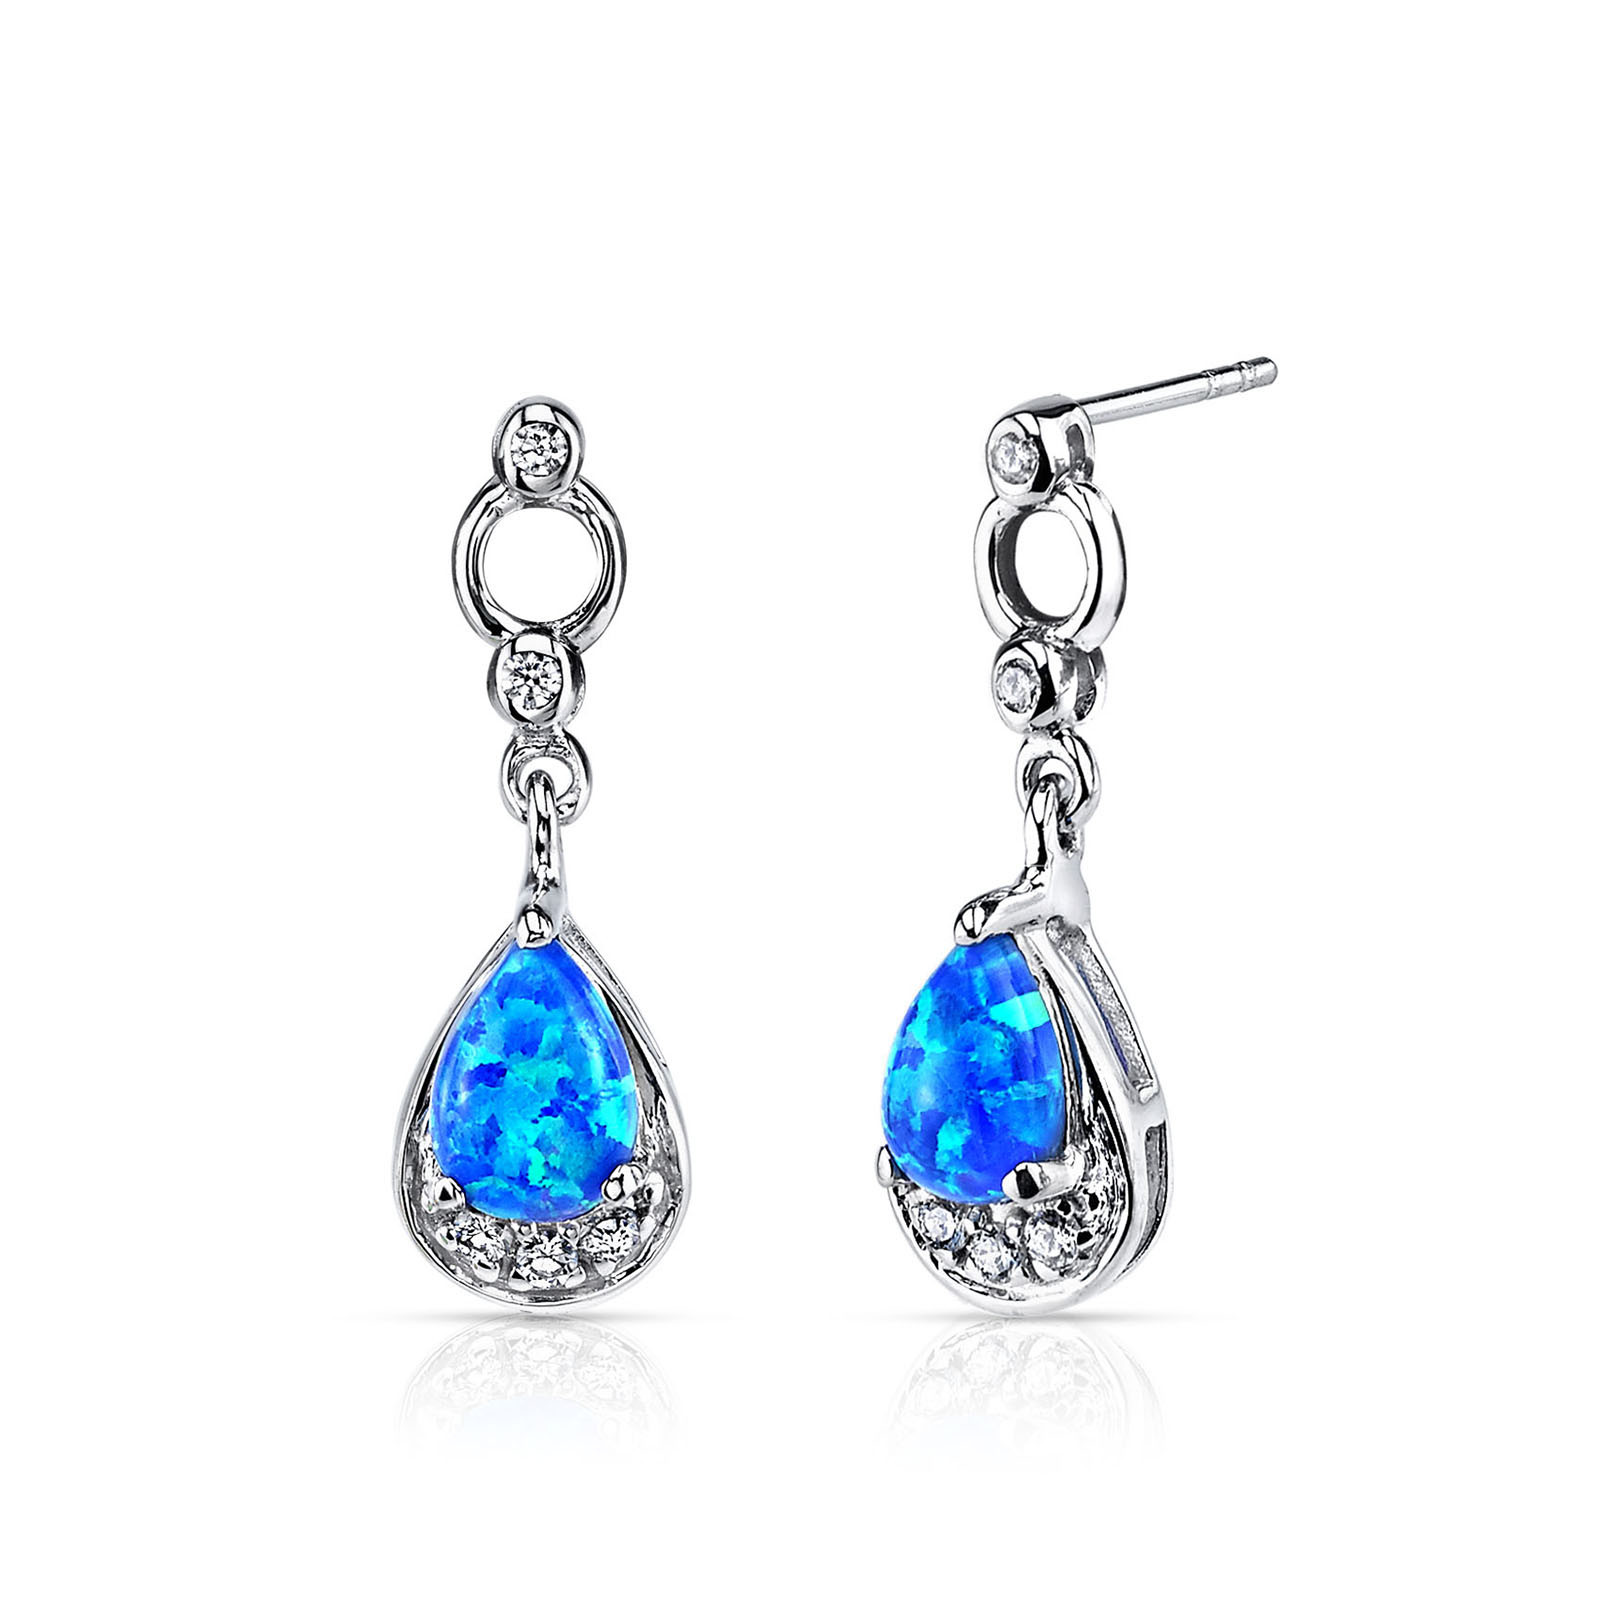 85faefd0db003 Blue-Green Opal & CZ Teardrop Drop Earrings in Sterling Silver